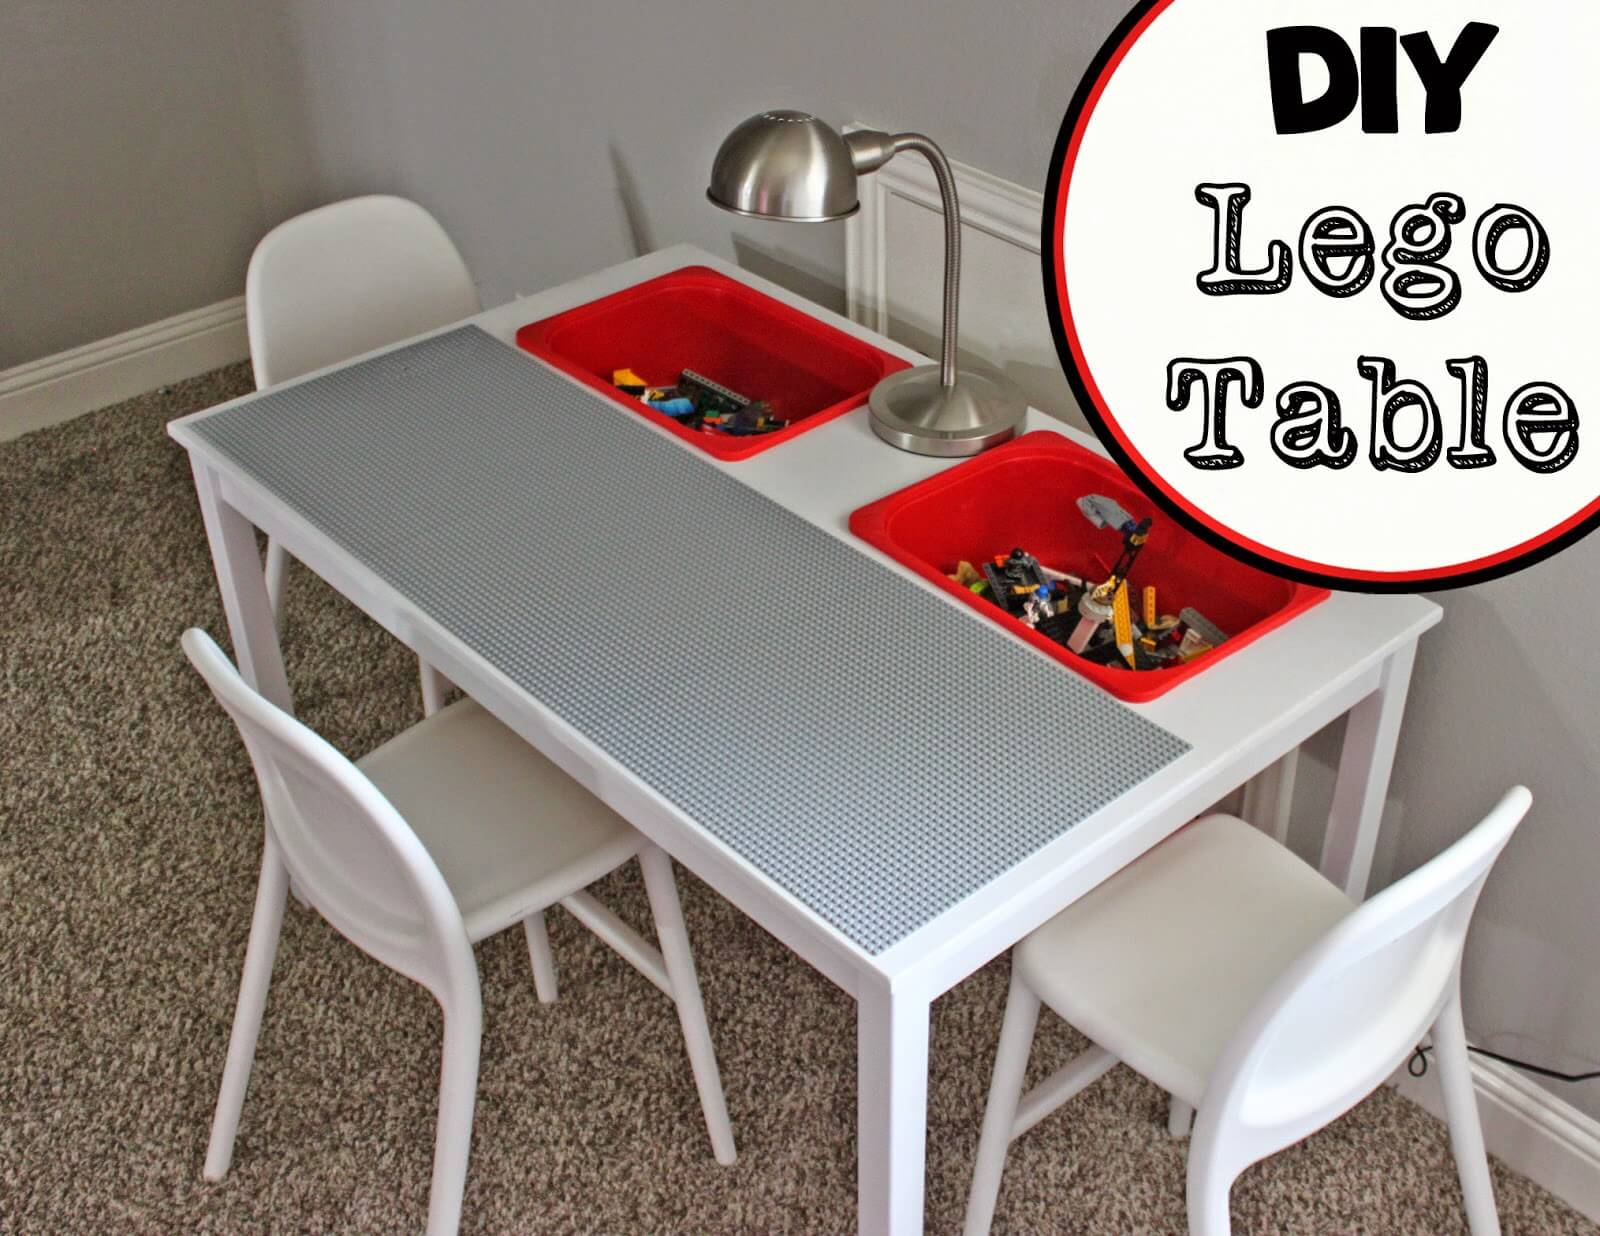 Ikea Lack Duplo Lego Tables Ikea Hacks Storage Keep Calm Get Organised